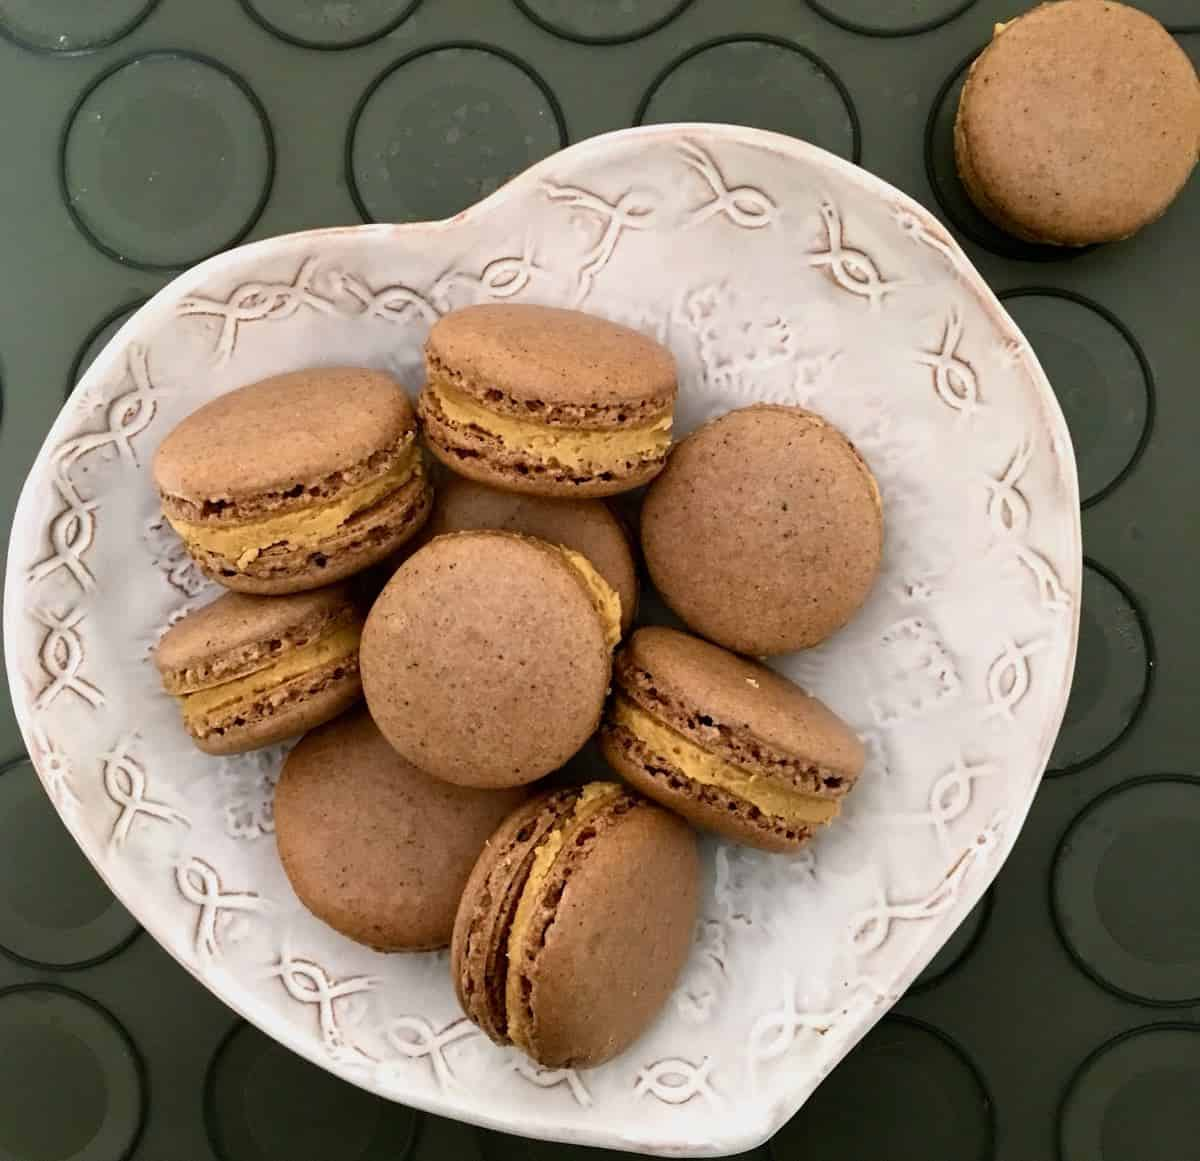 peanut butter filled chocolate macarons